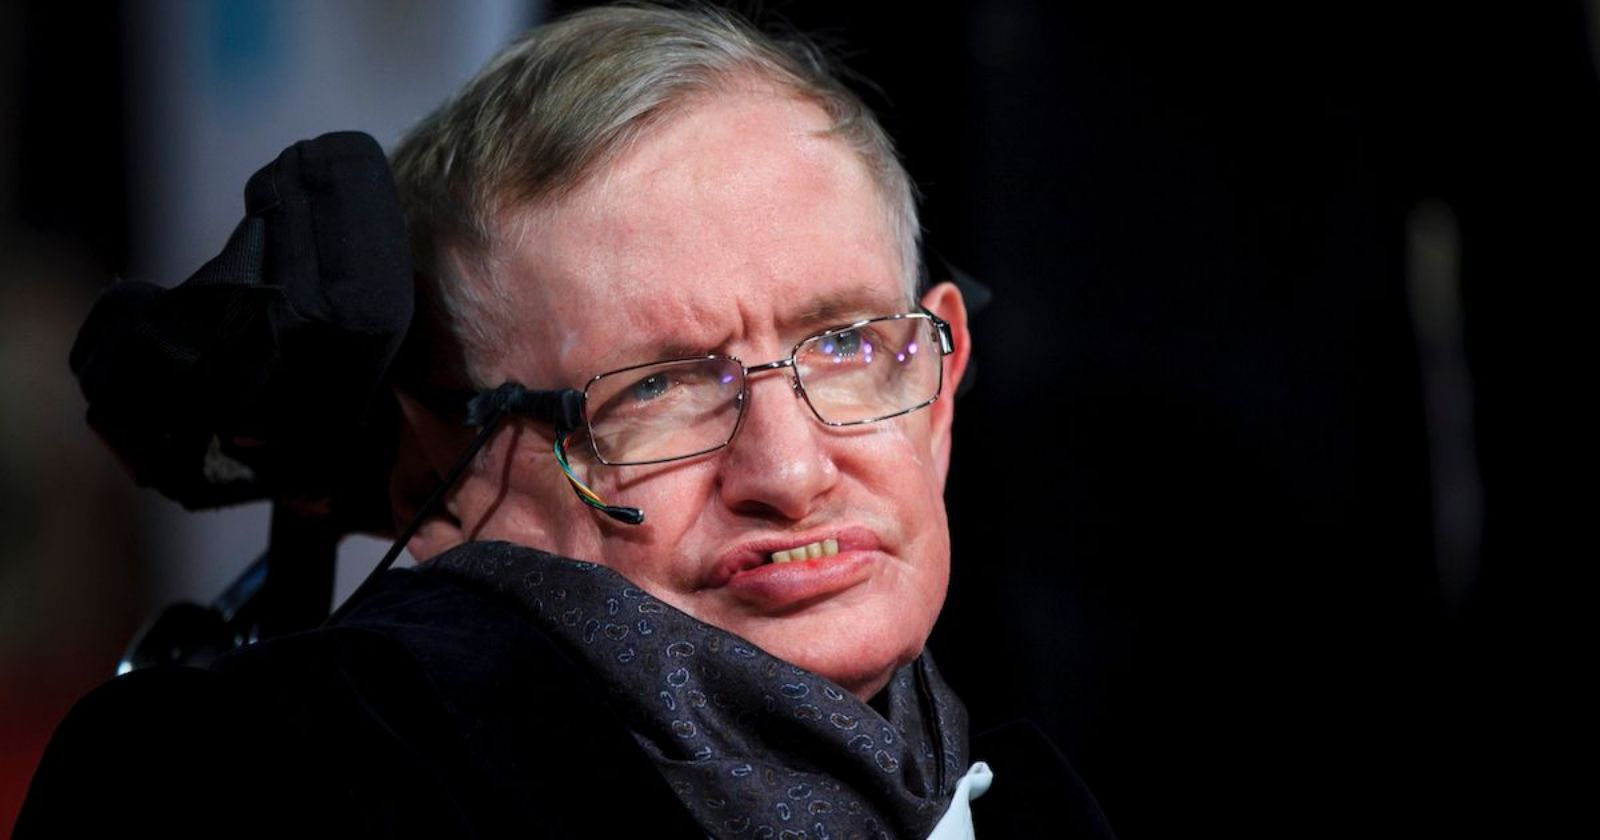 Stephen Hawking The Most Famous Scientist In The World